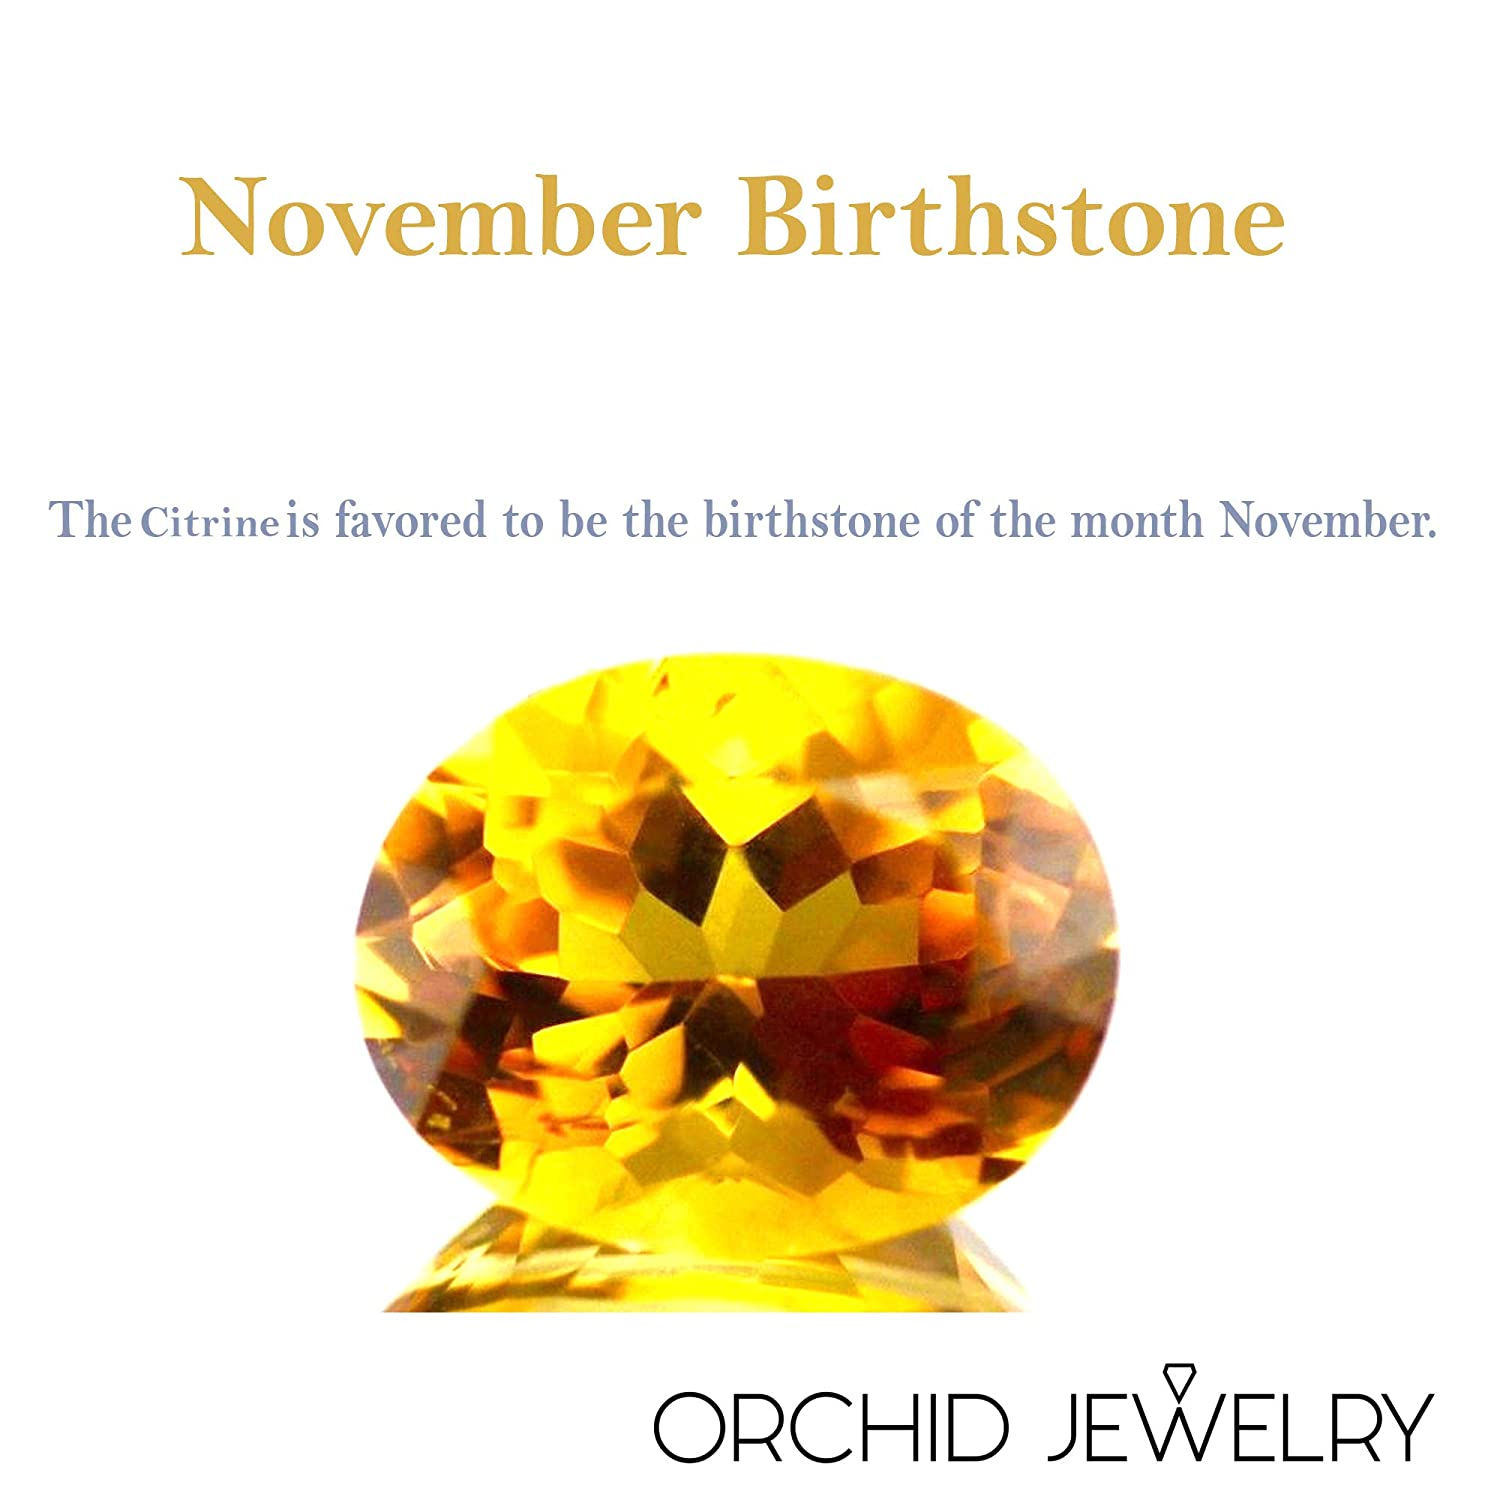 0.8 Carat Yellow Citrine Engagement Pendant by Orchid Jewelry November-Birthstones Pendant Simple Affordable. Beautiful Sterling Silver Pendant For Women